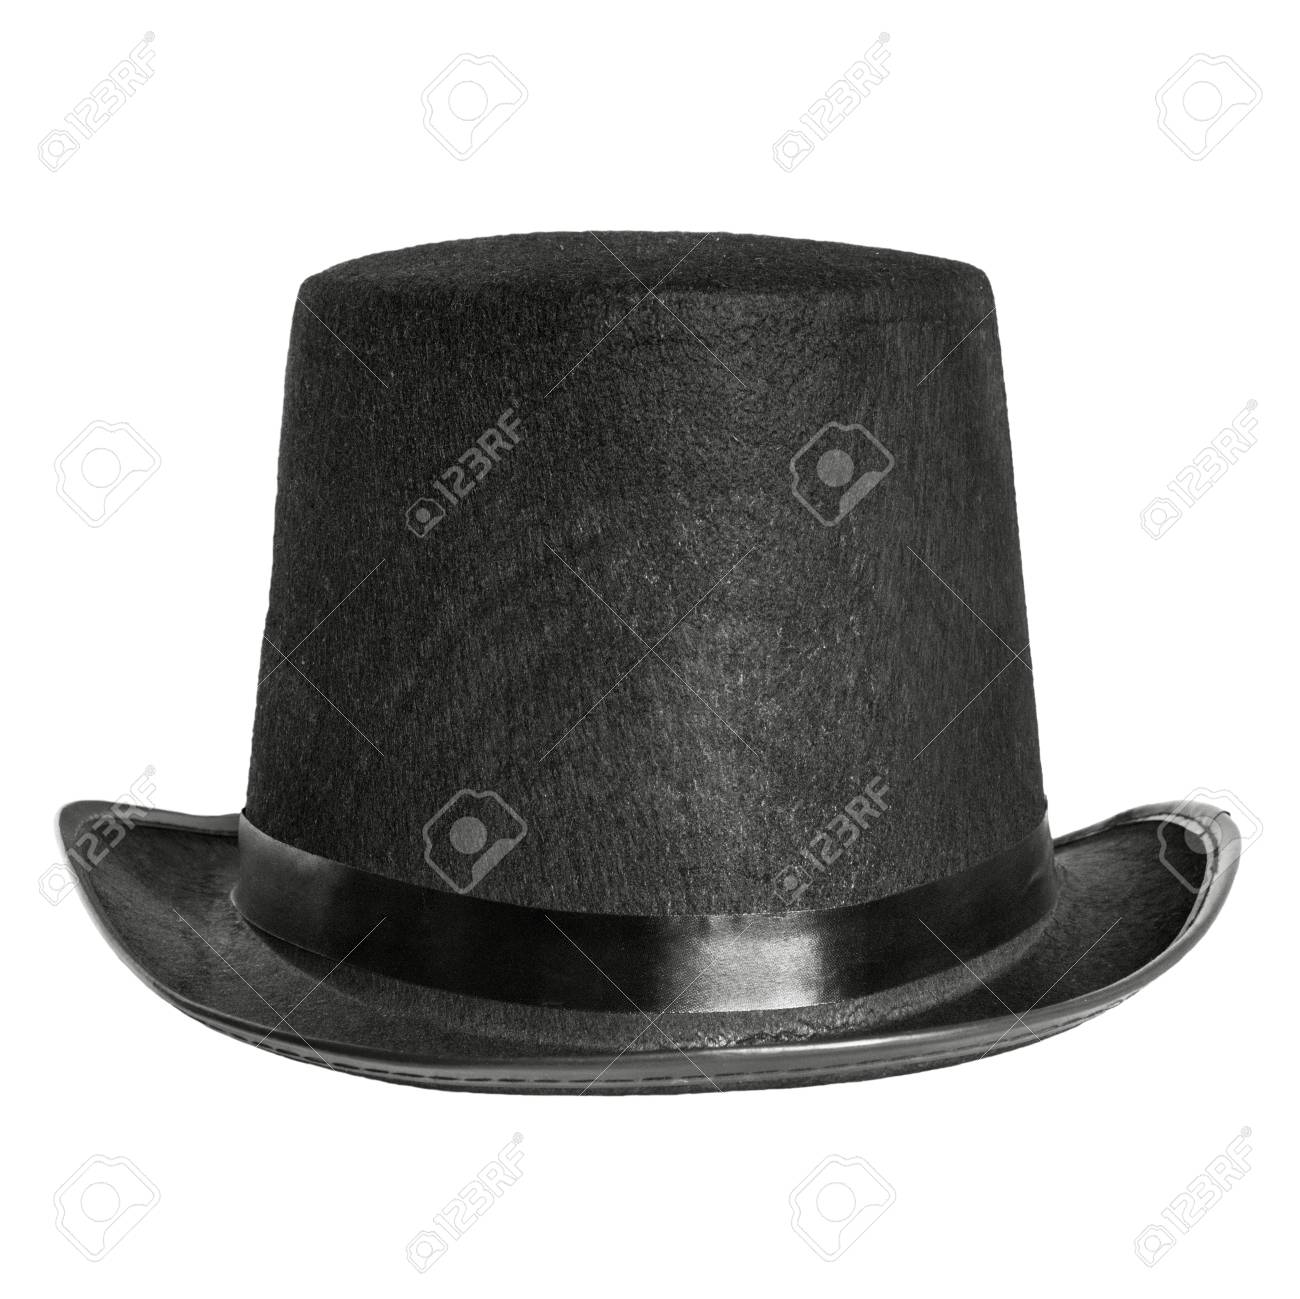 82fc1d0c38526 black felt hat isolated on white background. front view Stock Photo -  35084258